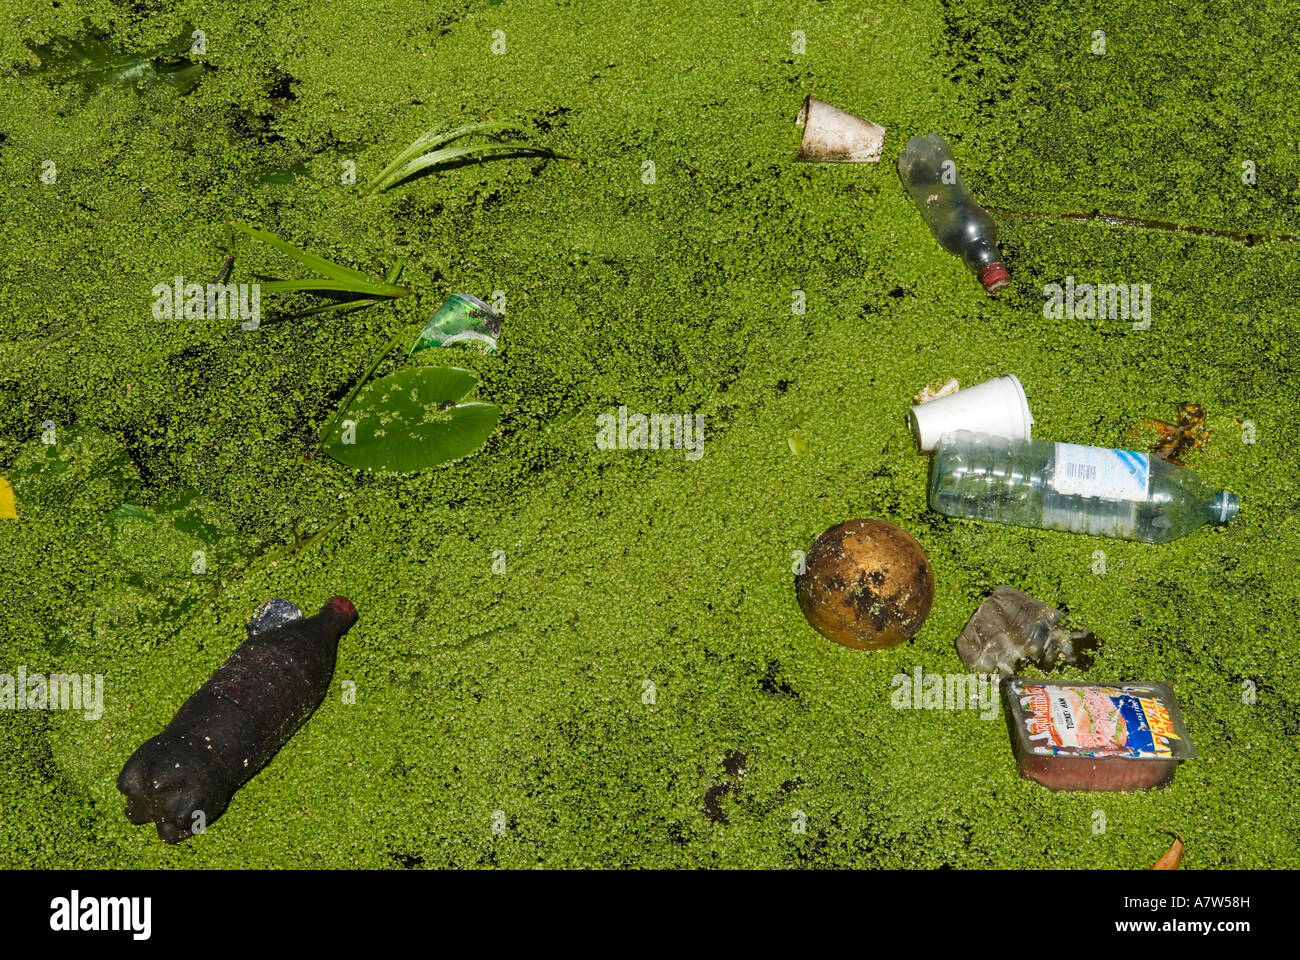 East London Stratford River Lea Lee 2006 Rubbish trash green weed - Stock Image